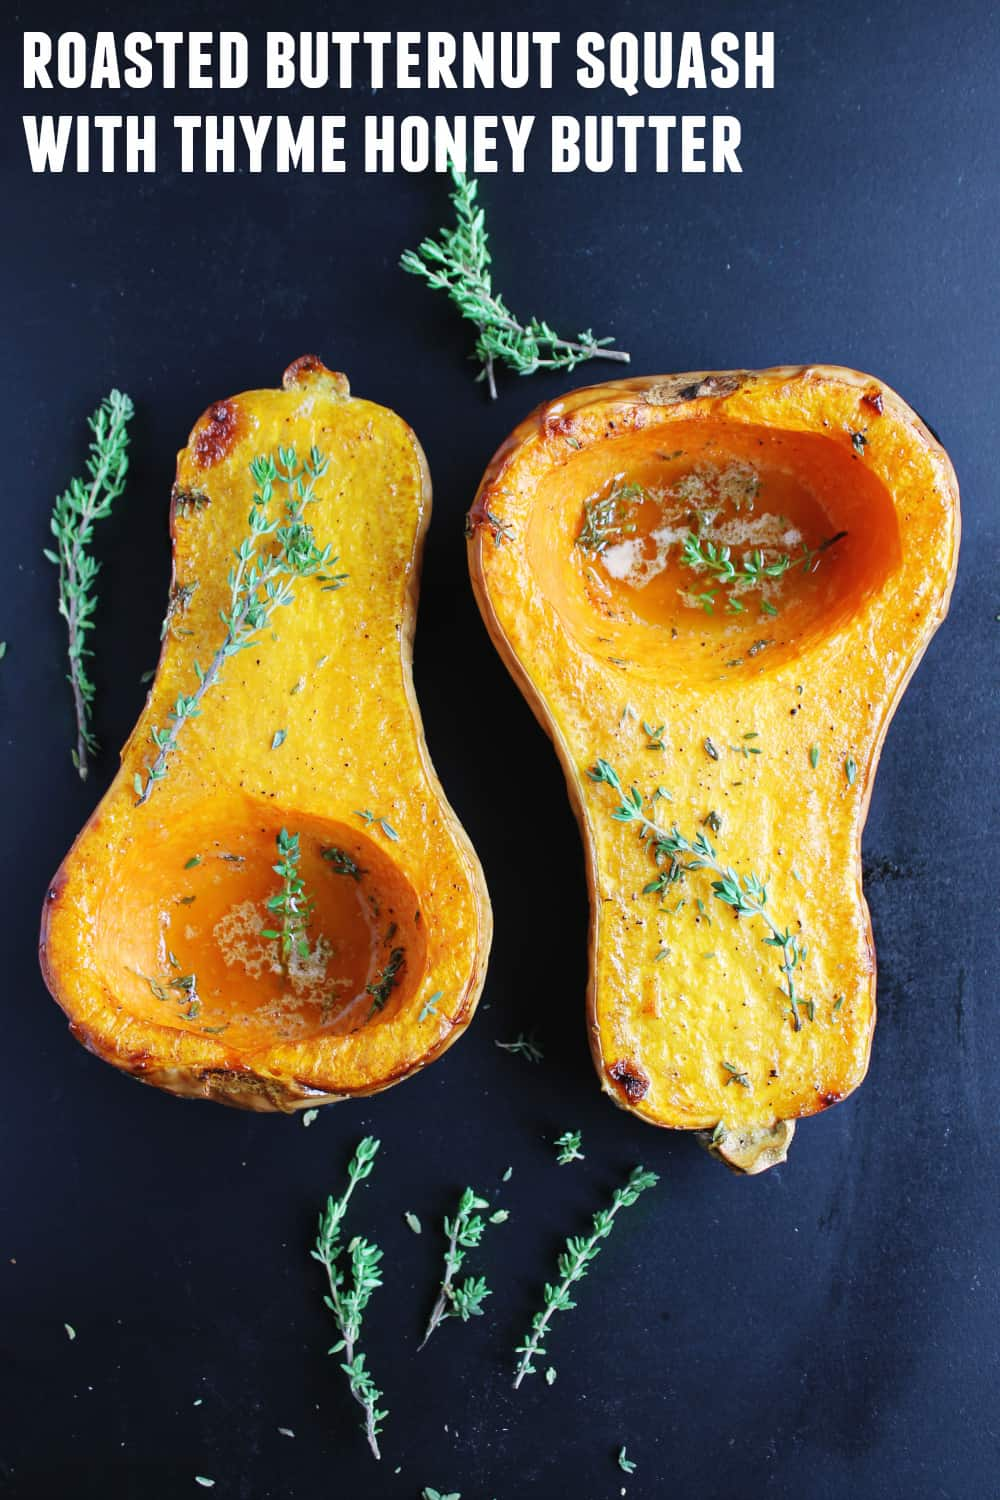 Simple roasted butternut squash with thyme honey butter recipe! The ...